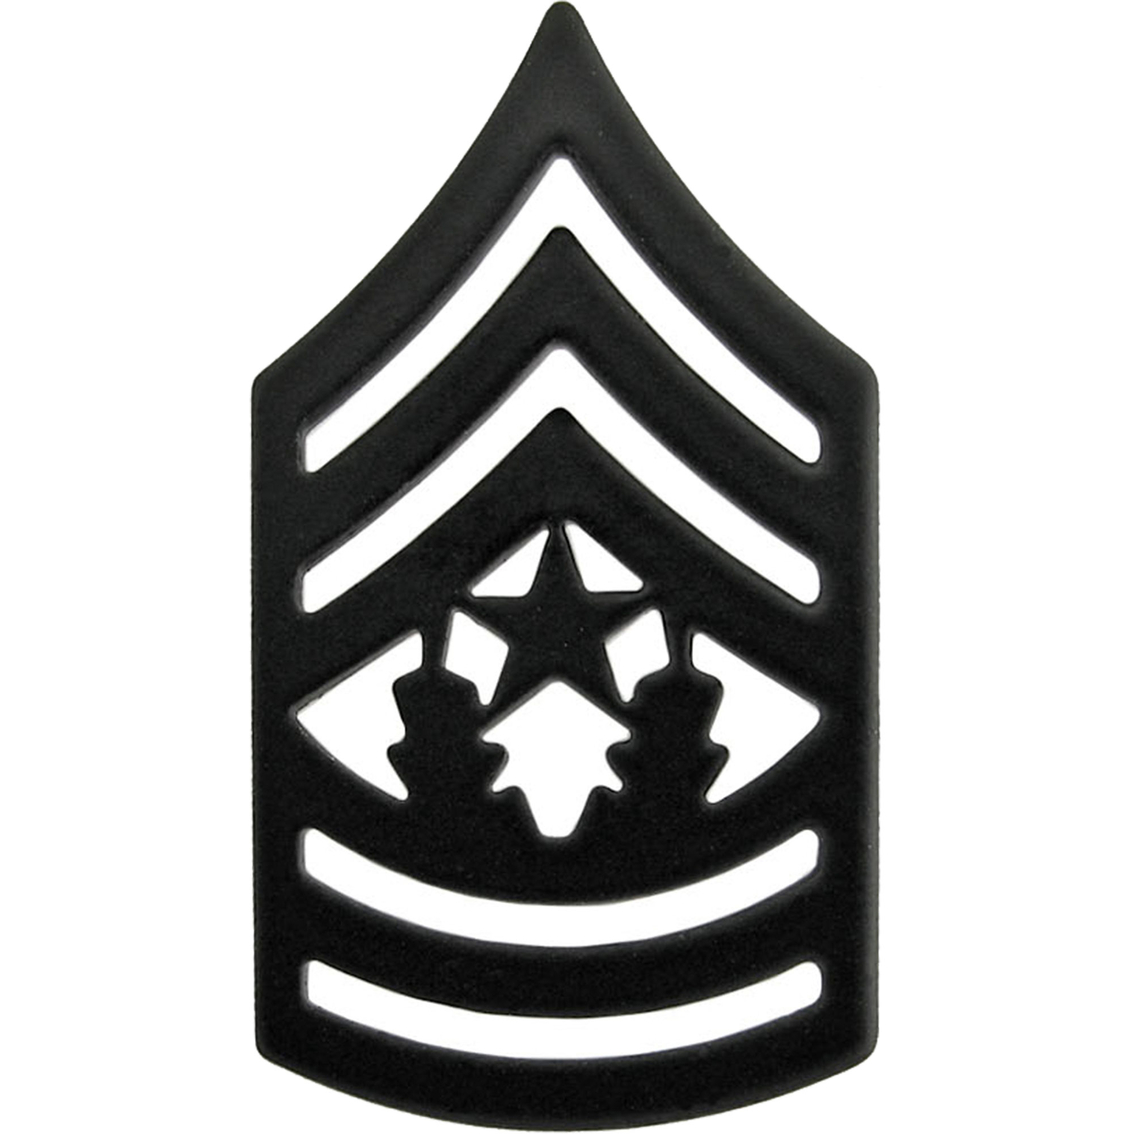 Army Csm Subdued Pin On Rank Subdued Pin On Rank